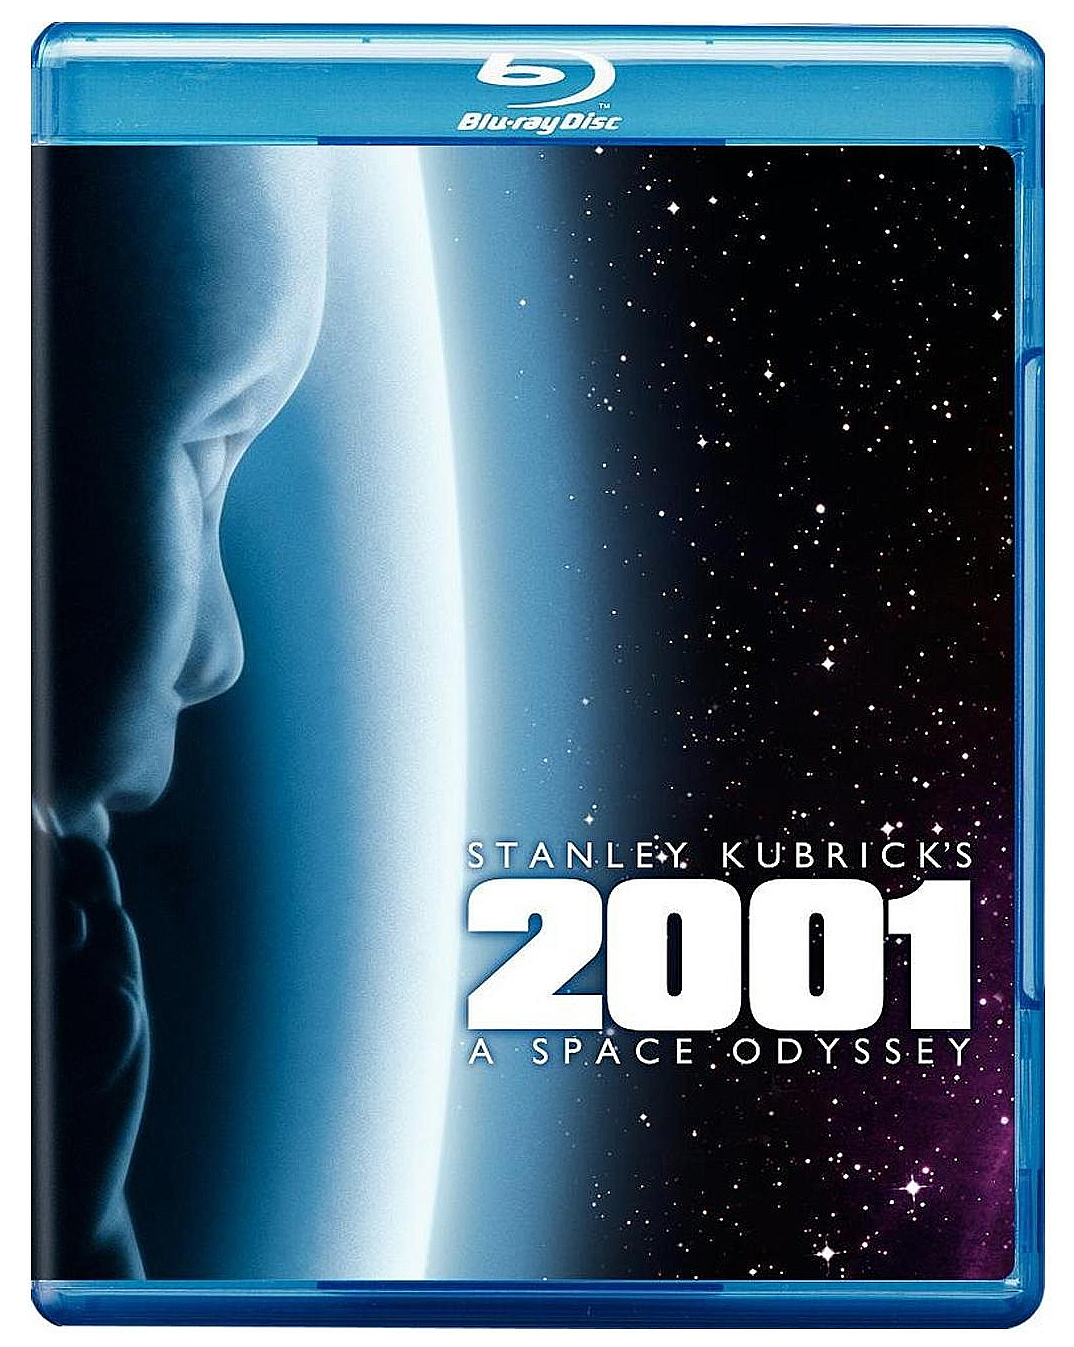 2001 A SPACE ODYSSEY BLU-RAY DVD STANLEY KUBRICK MUST OWN DVD 5.1 SURROUND